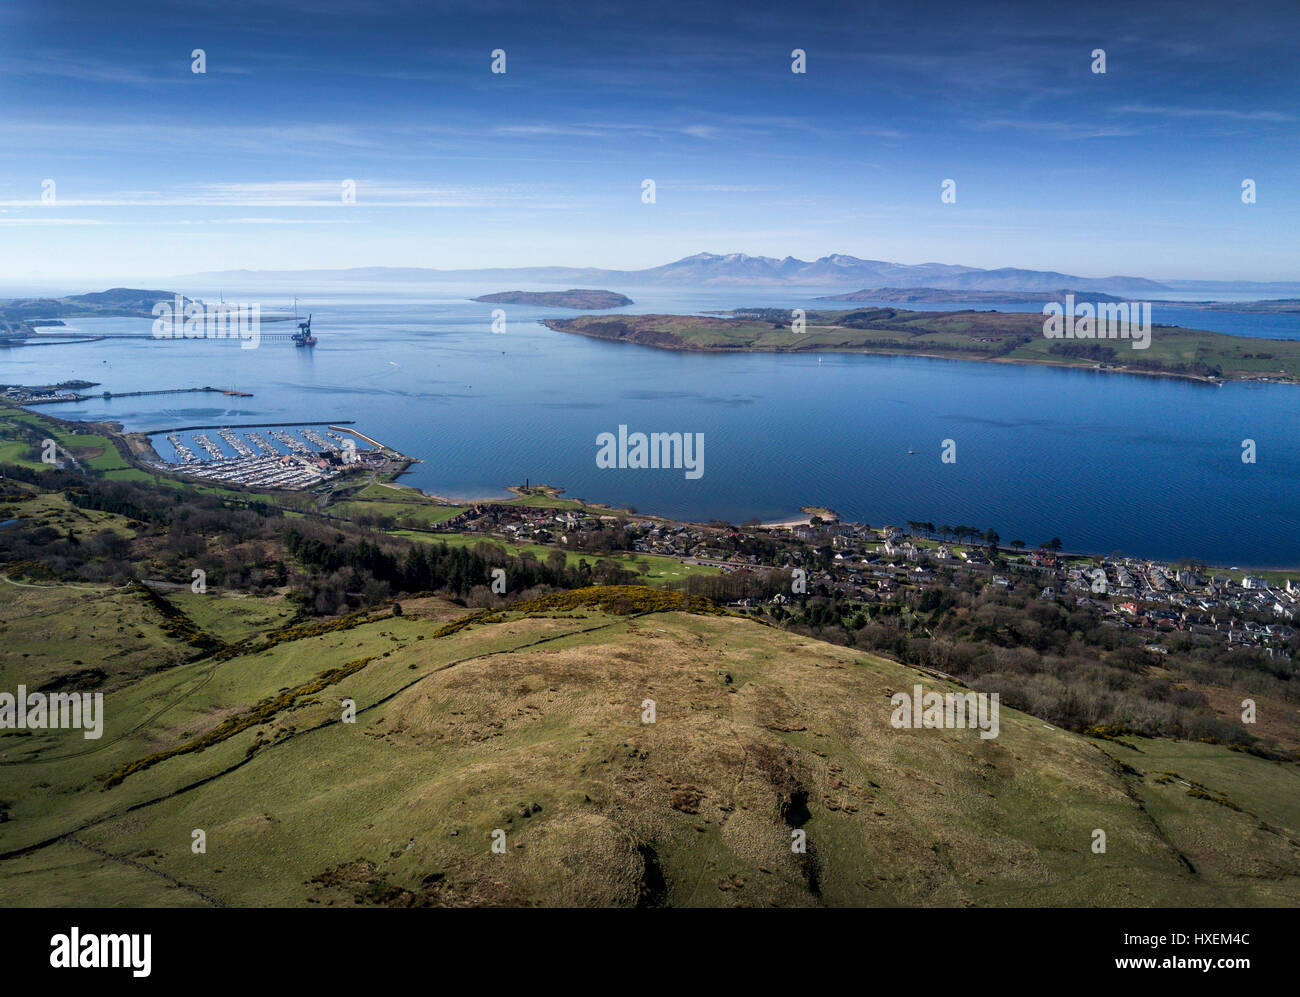 A view from Haylie Brae over looking the Firth of Clyde and Largs. - Stock Image